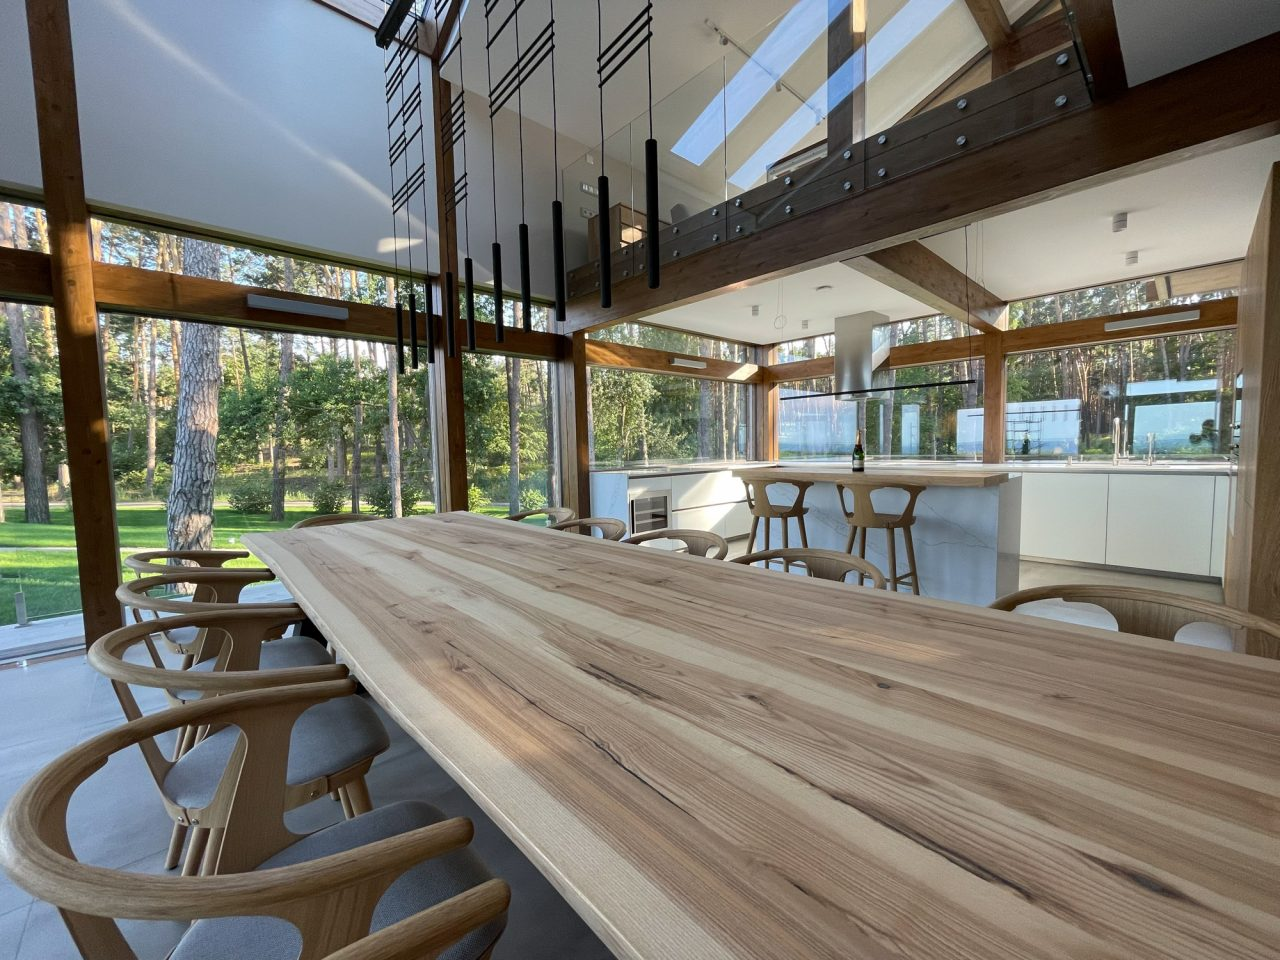 Hlass_house_KAGER - Hurii_04